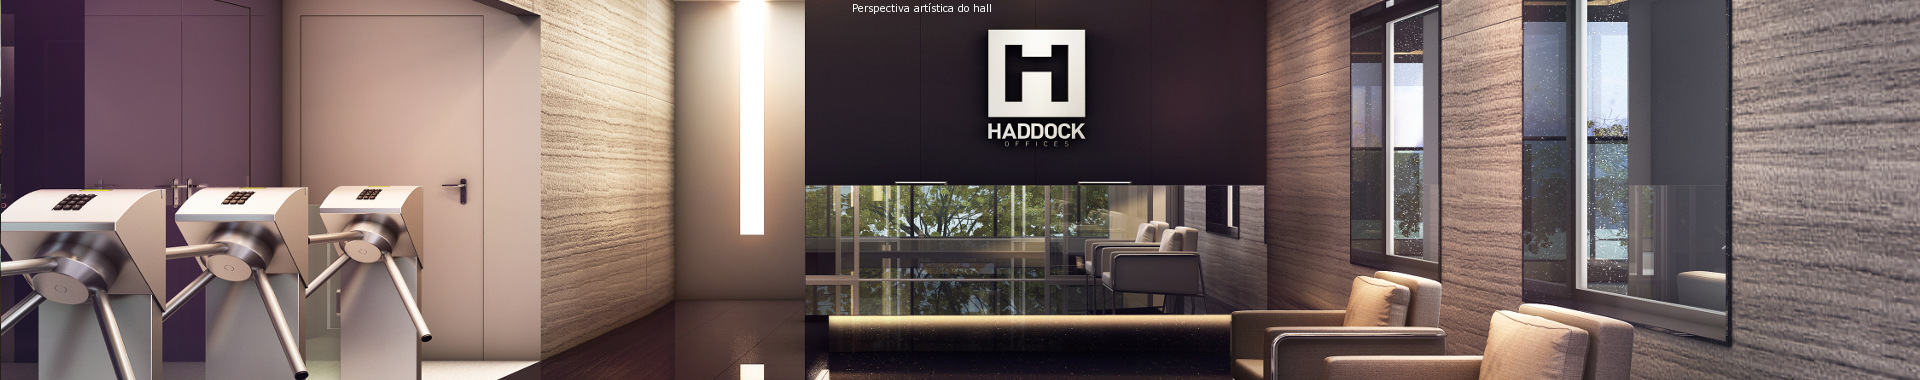 Haddock Offices